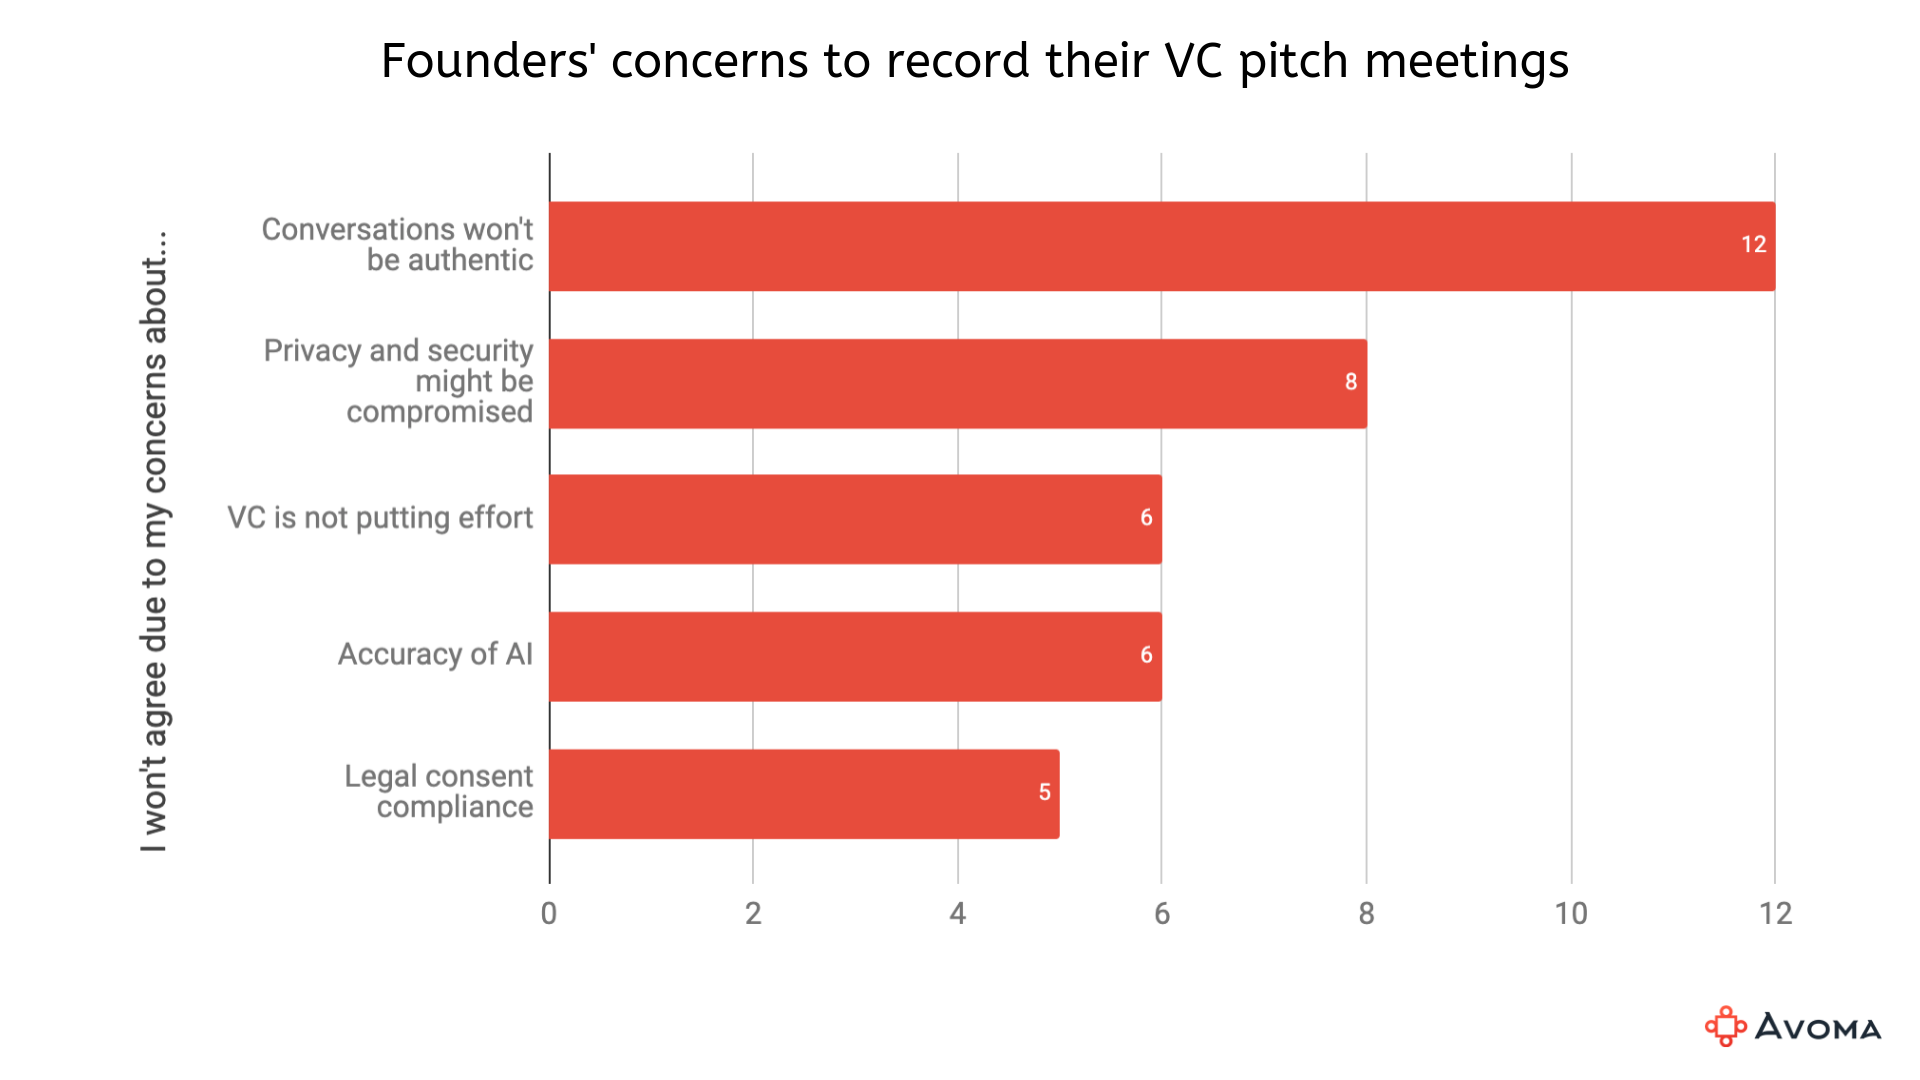 Founders' concerns about VCs recording their pitch meetings